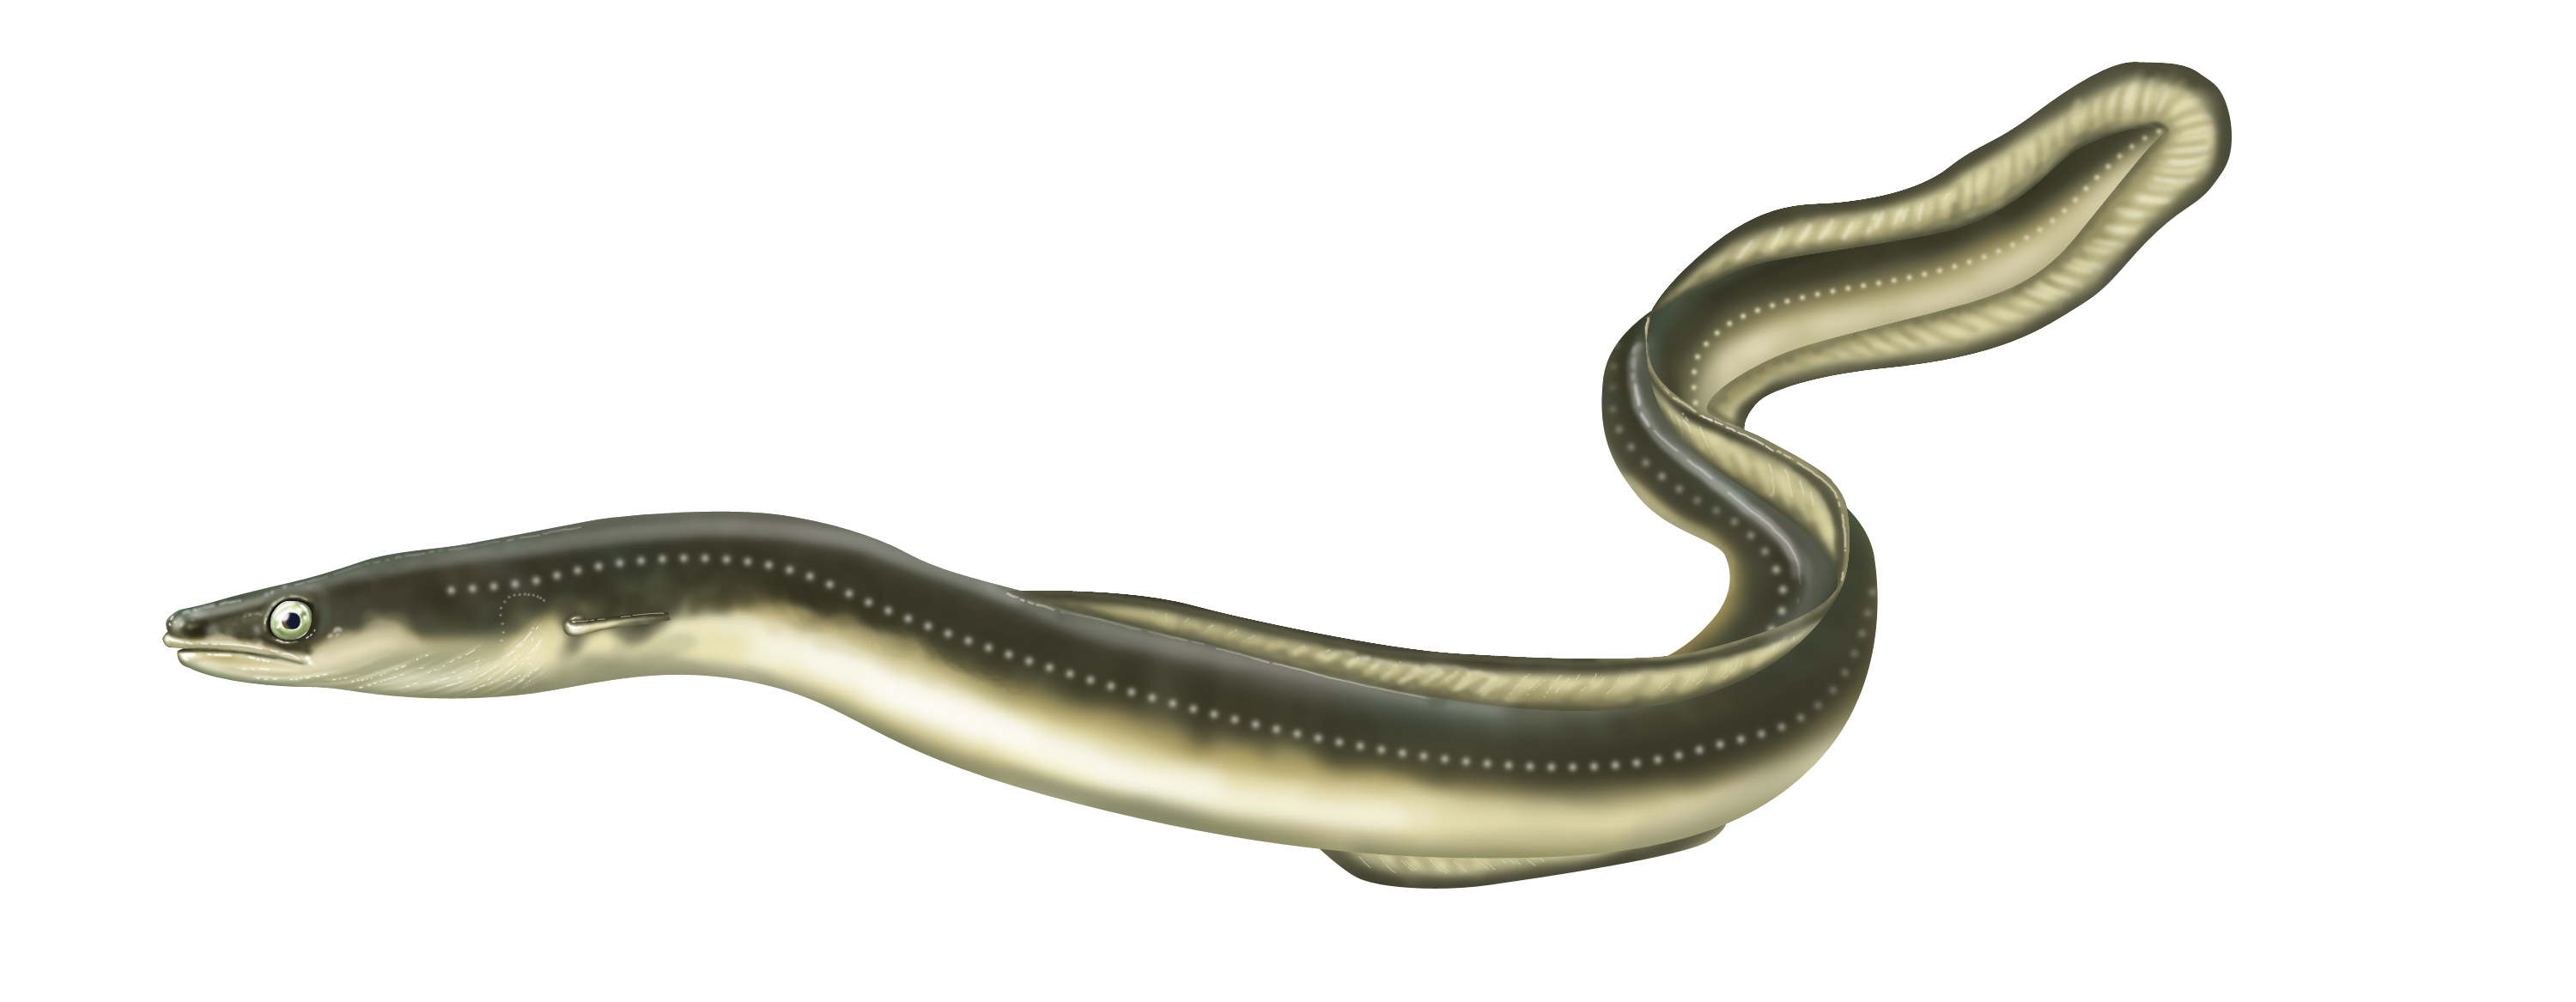 023 EKANS 023 312442503 together with Jafar further Stock Illustration Illustration Of Cute Green Snake likewise Junglebook3 in addition Kaa Recolor Eyes 496684100. on cartoon snake